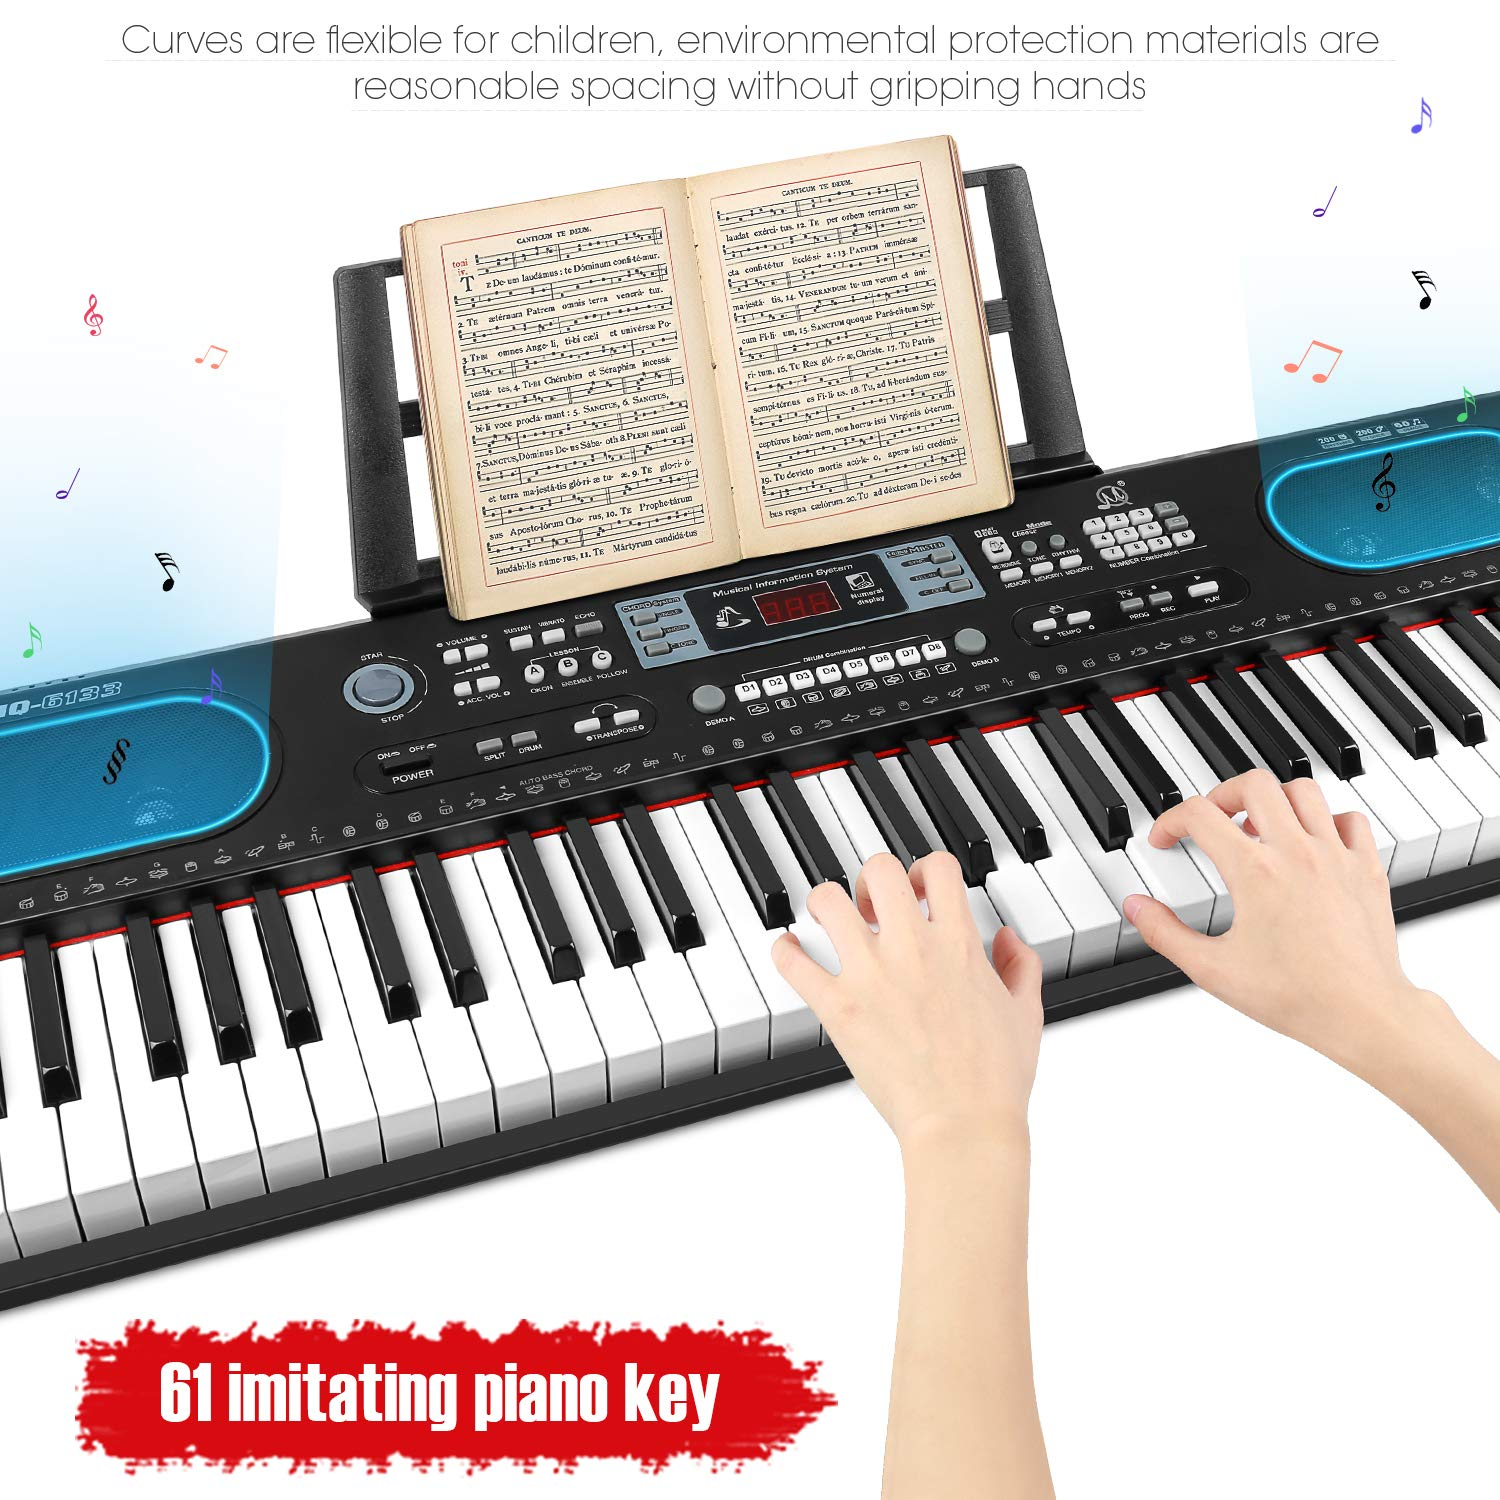 ZJTL 61-Key Digital Electric Piano Keyboard &Music Stand &microphone- Portable Electronic Keyboard (Kids & Adults) MQ-6133 by ZJTL (Image #4)